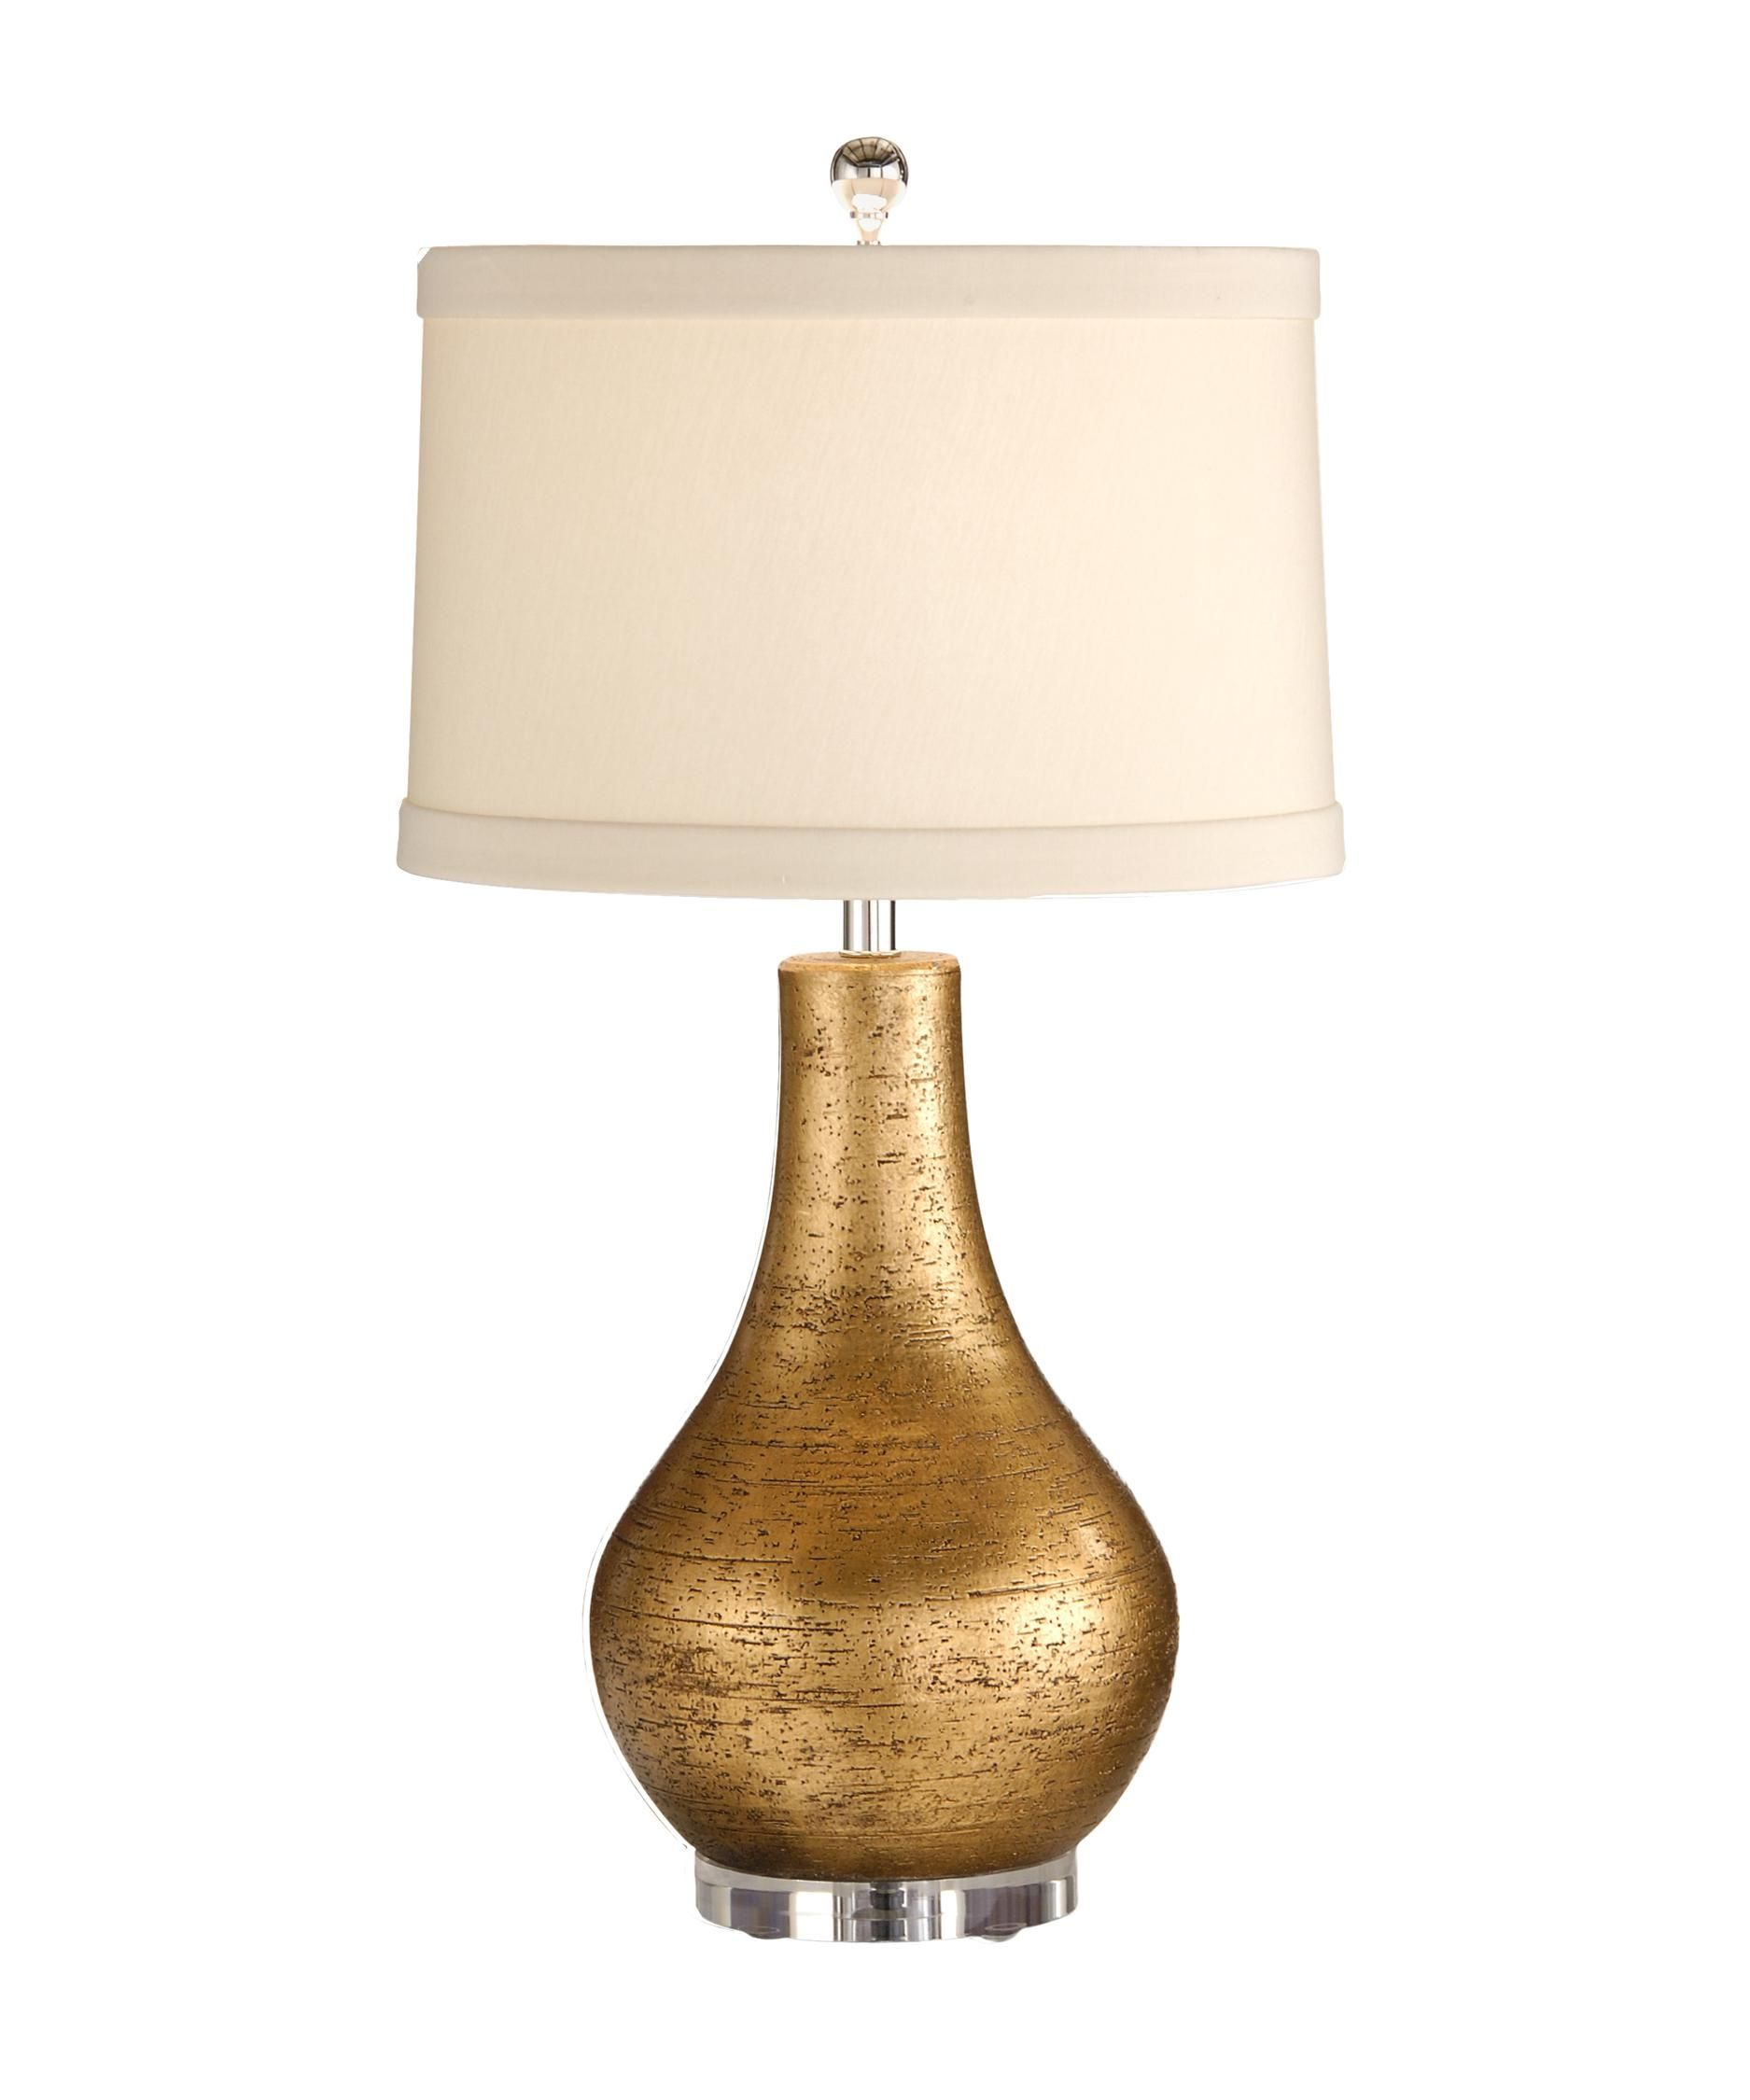 Wildwood 27504 Moderno 30 Inch High Table Lamp Capitol Lighting 1 800lighting Com Lamp Gold Table Lamp Table Lamp